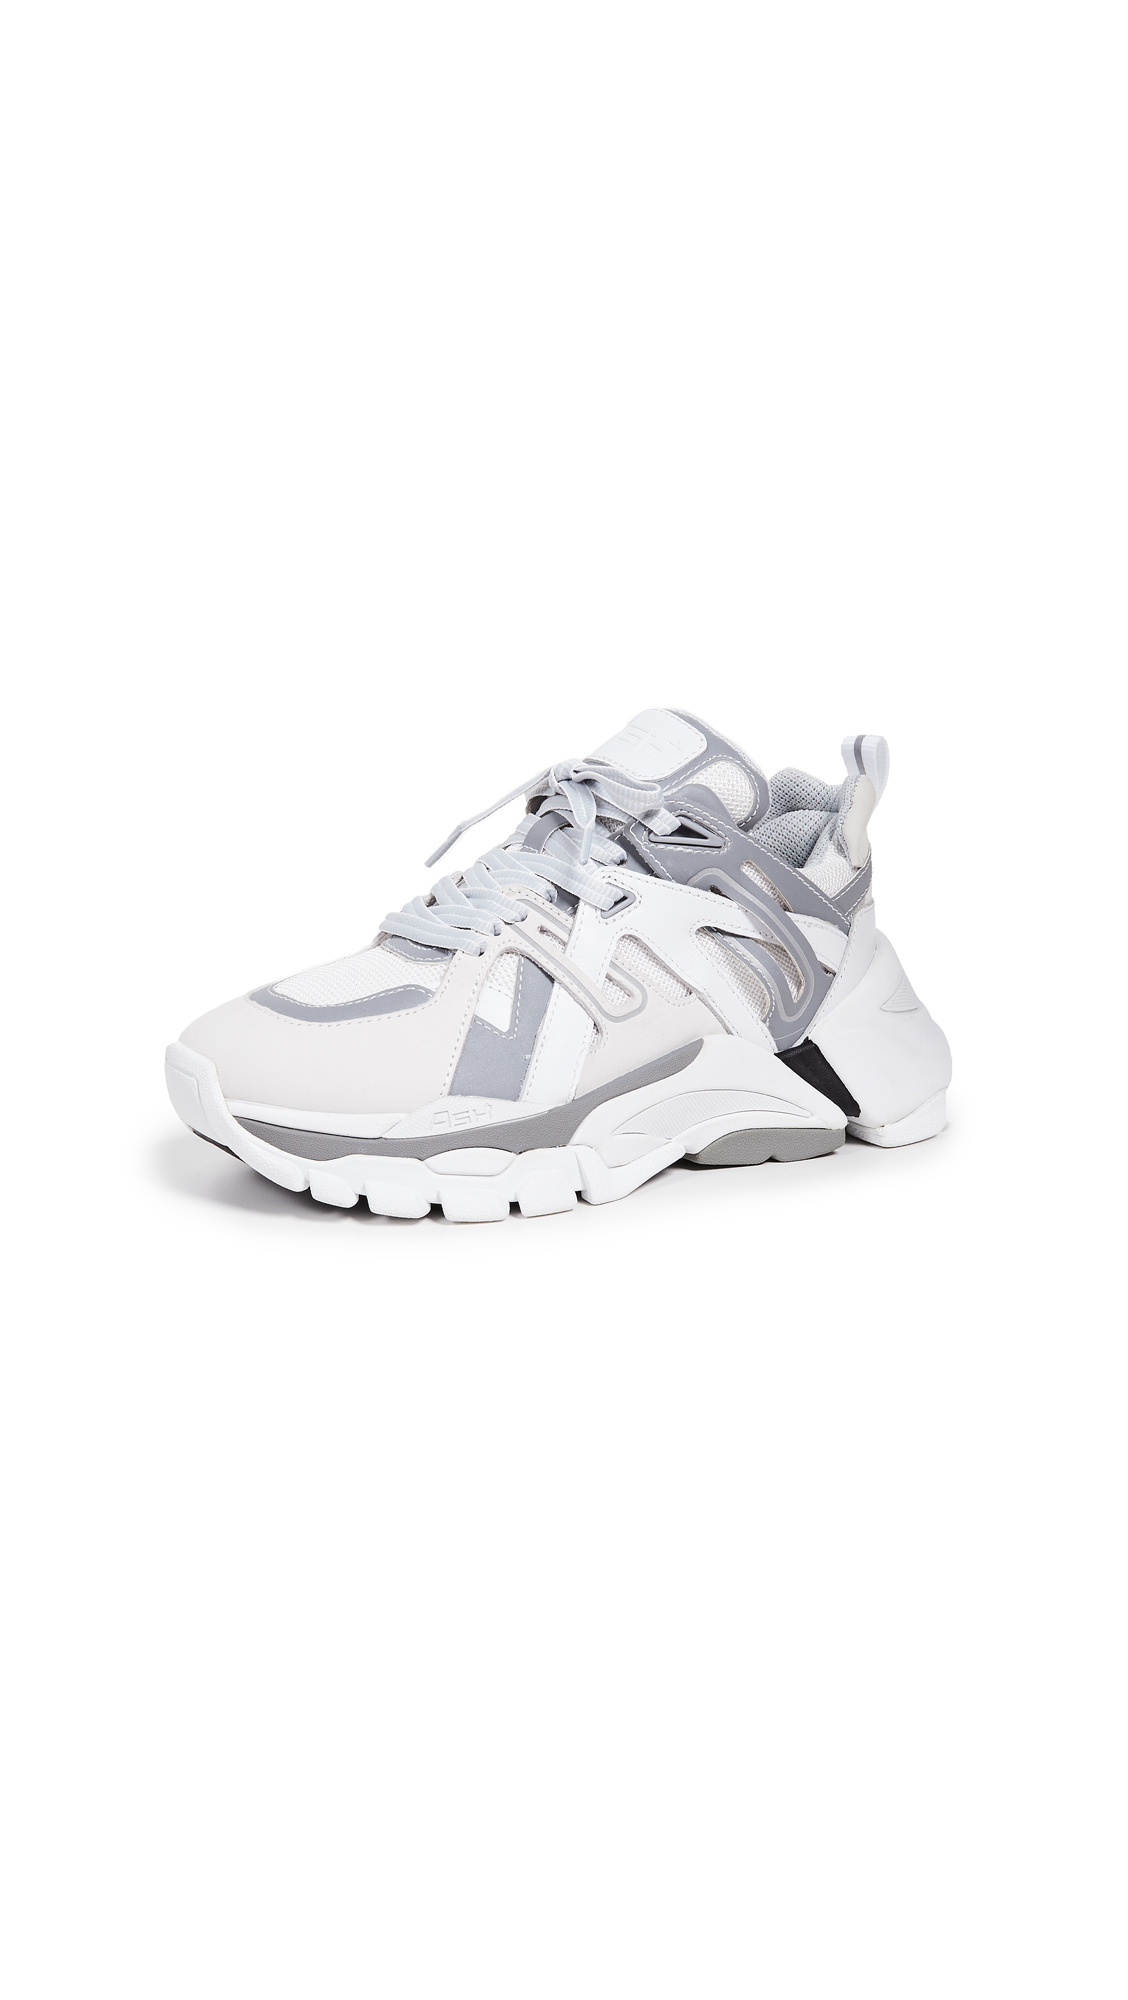 Ash Flash Sneakers - White/Reflex Silver/Off White